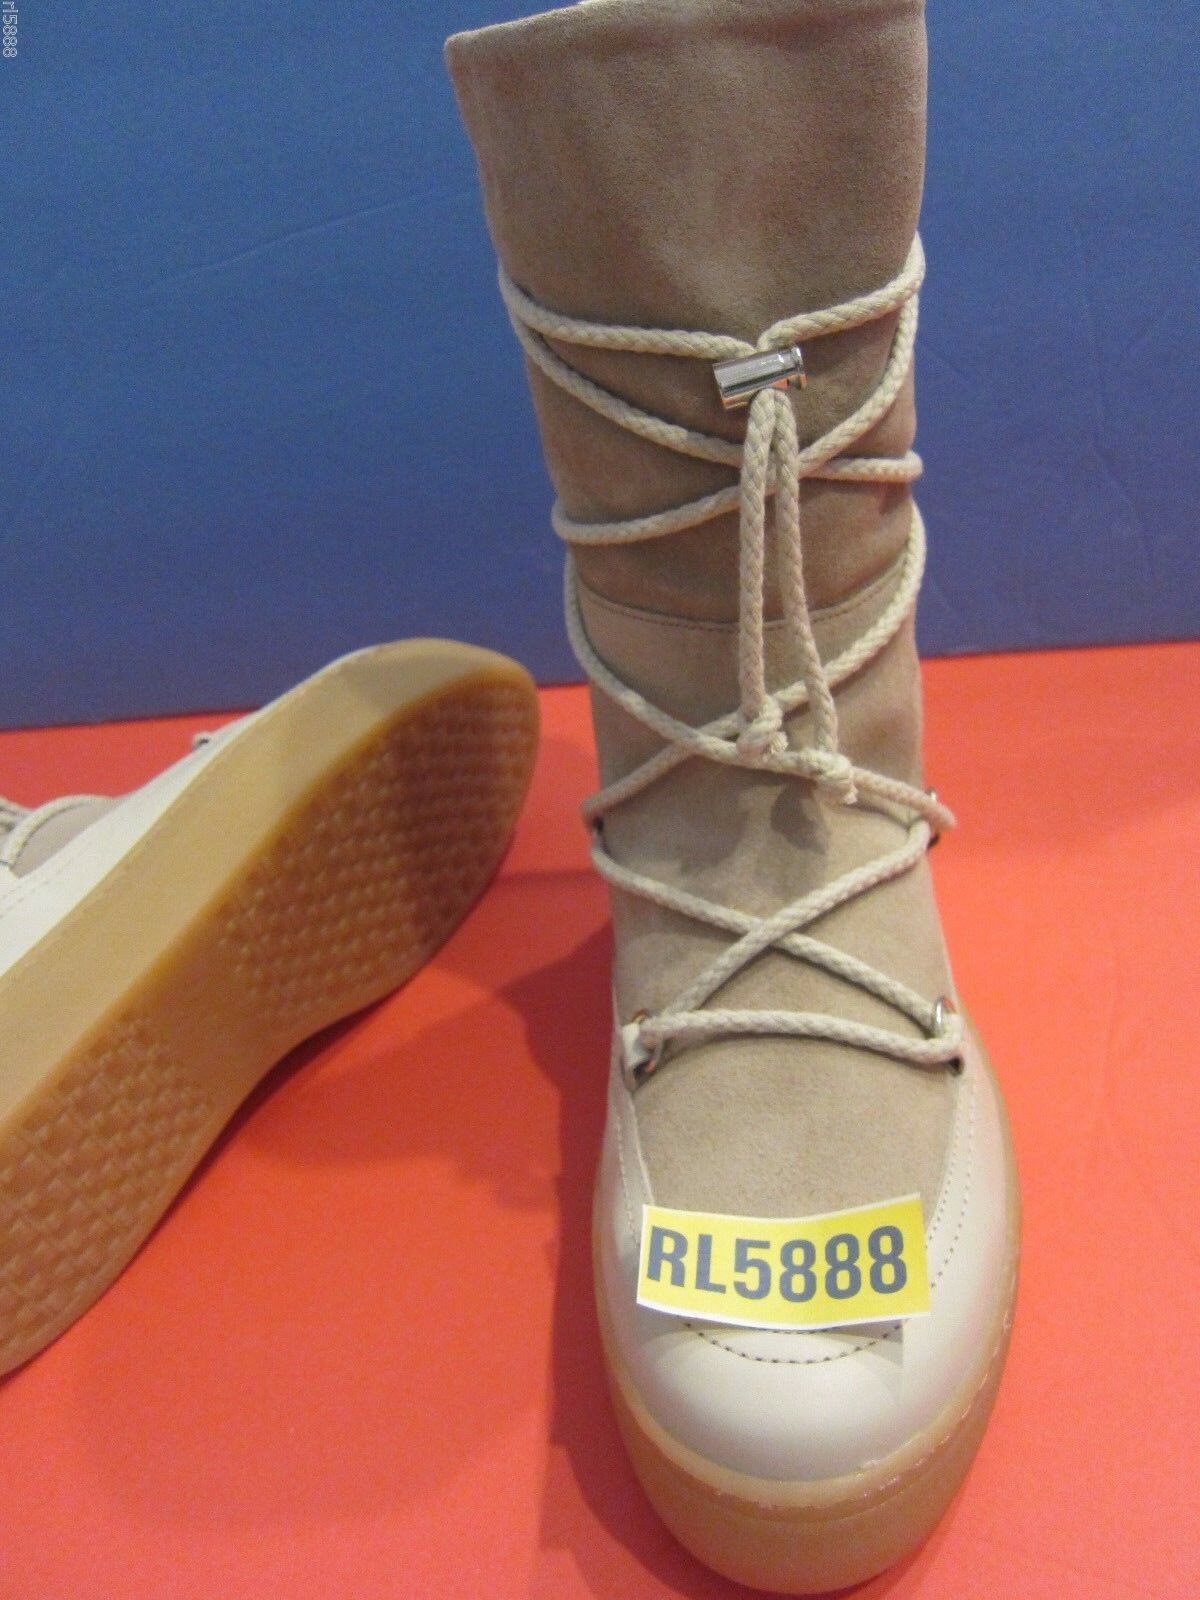 NEW ZARA Split Suede Lace-Up Stivali Shoes Taupe   6.5 EU 37 Bloggers Fave  159.9